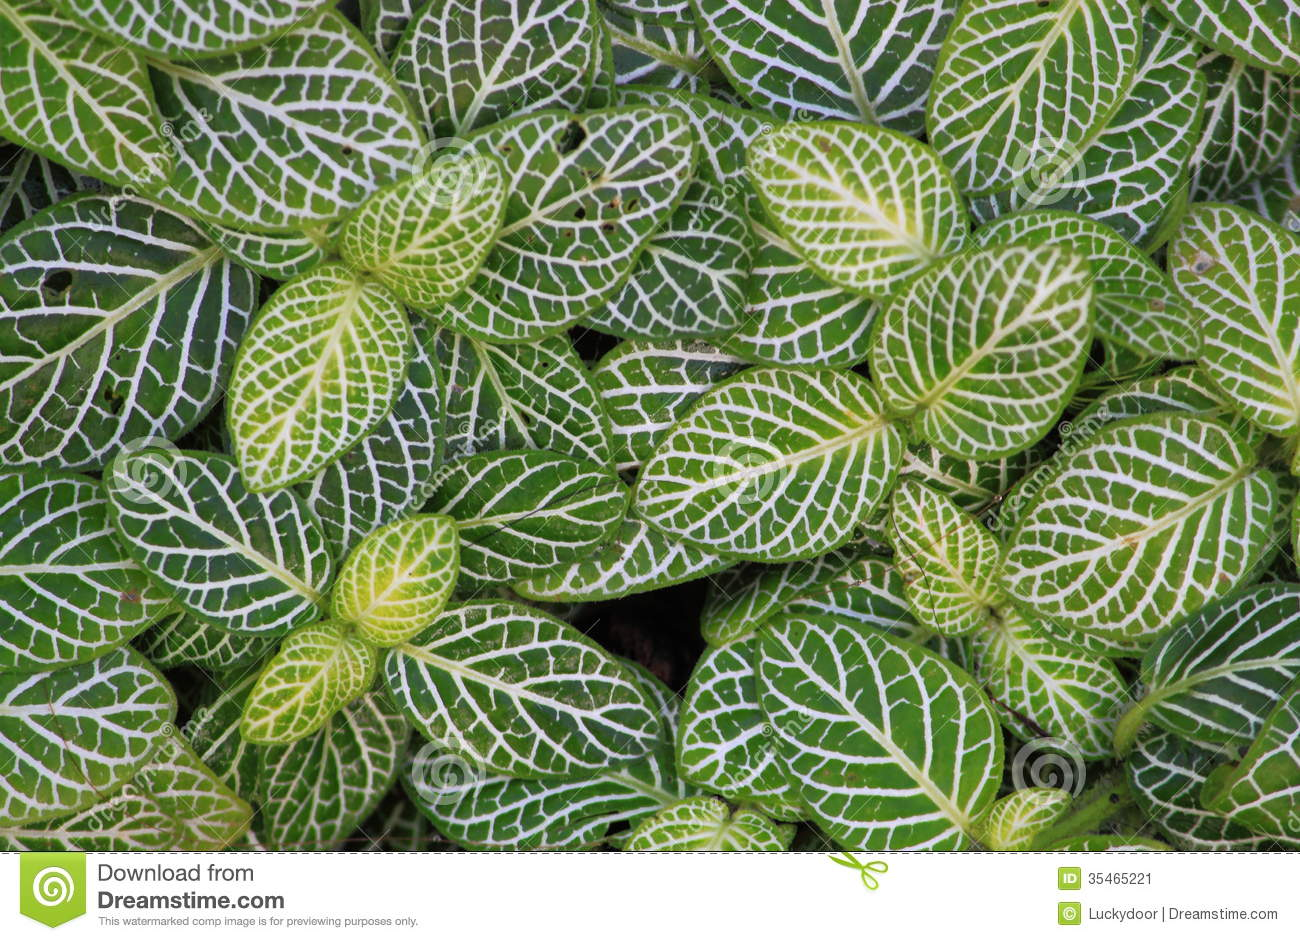 Decorative Plants stock image. Image of leaves, background - 35465221